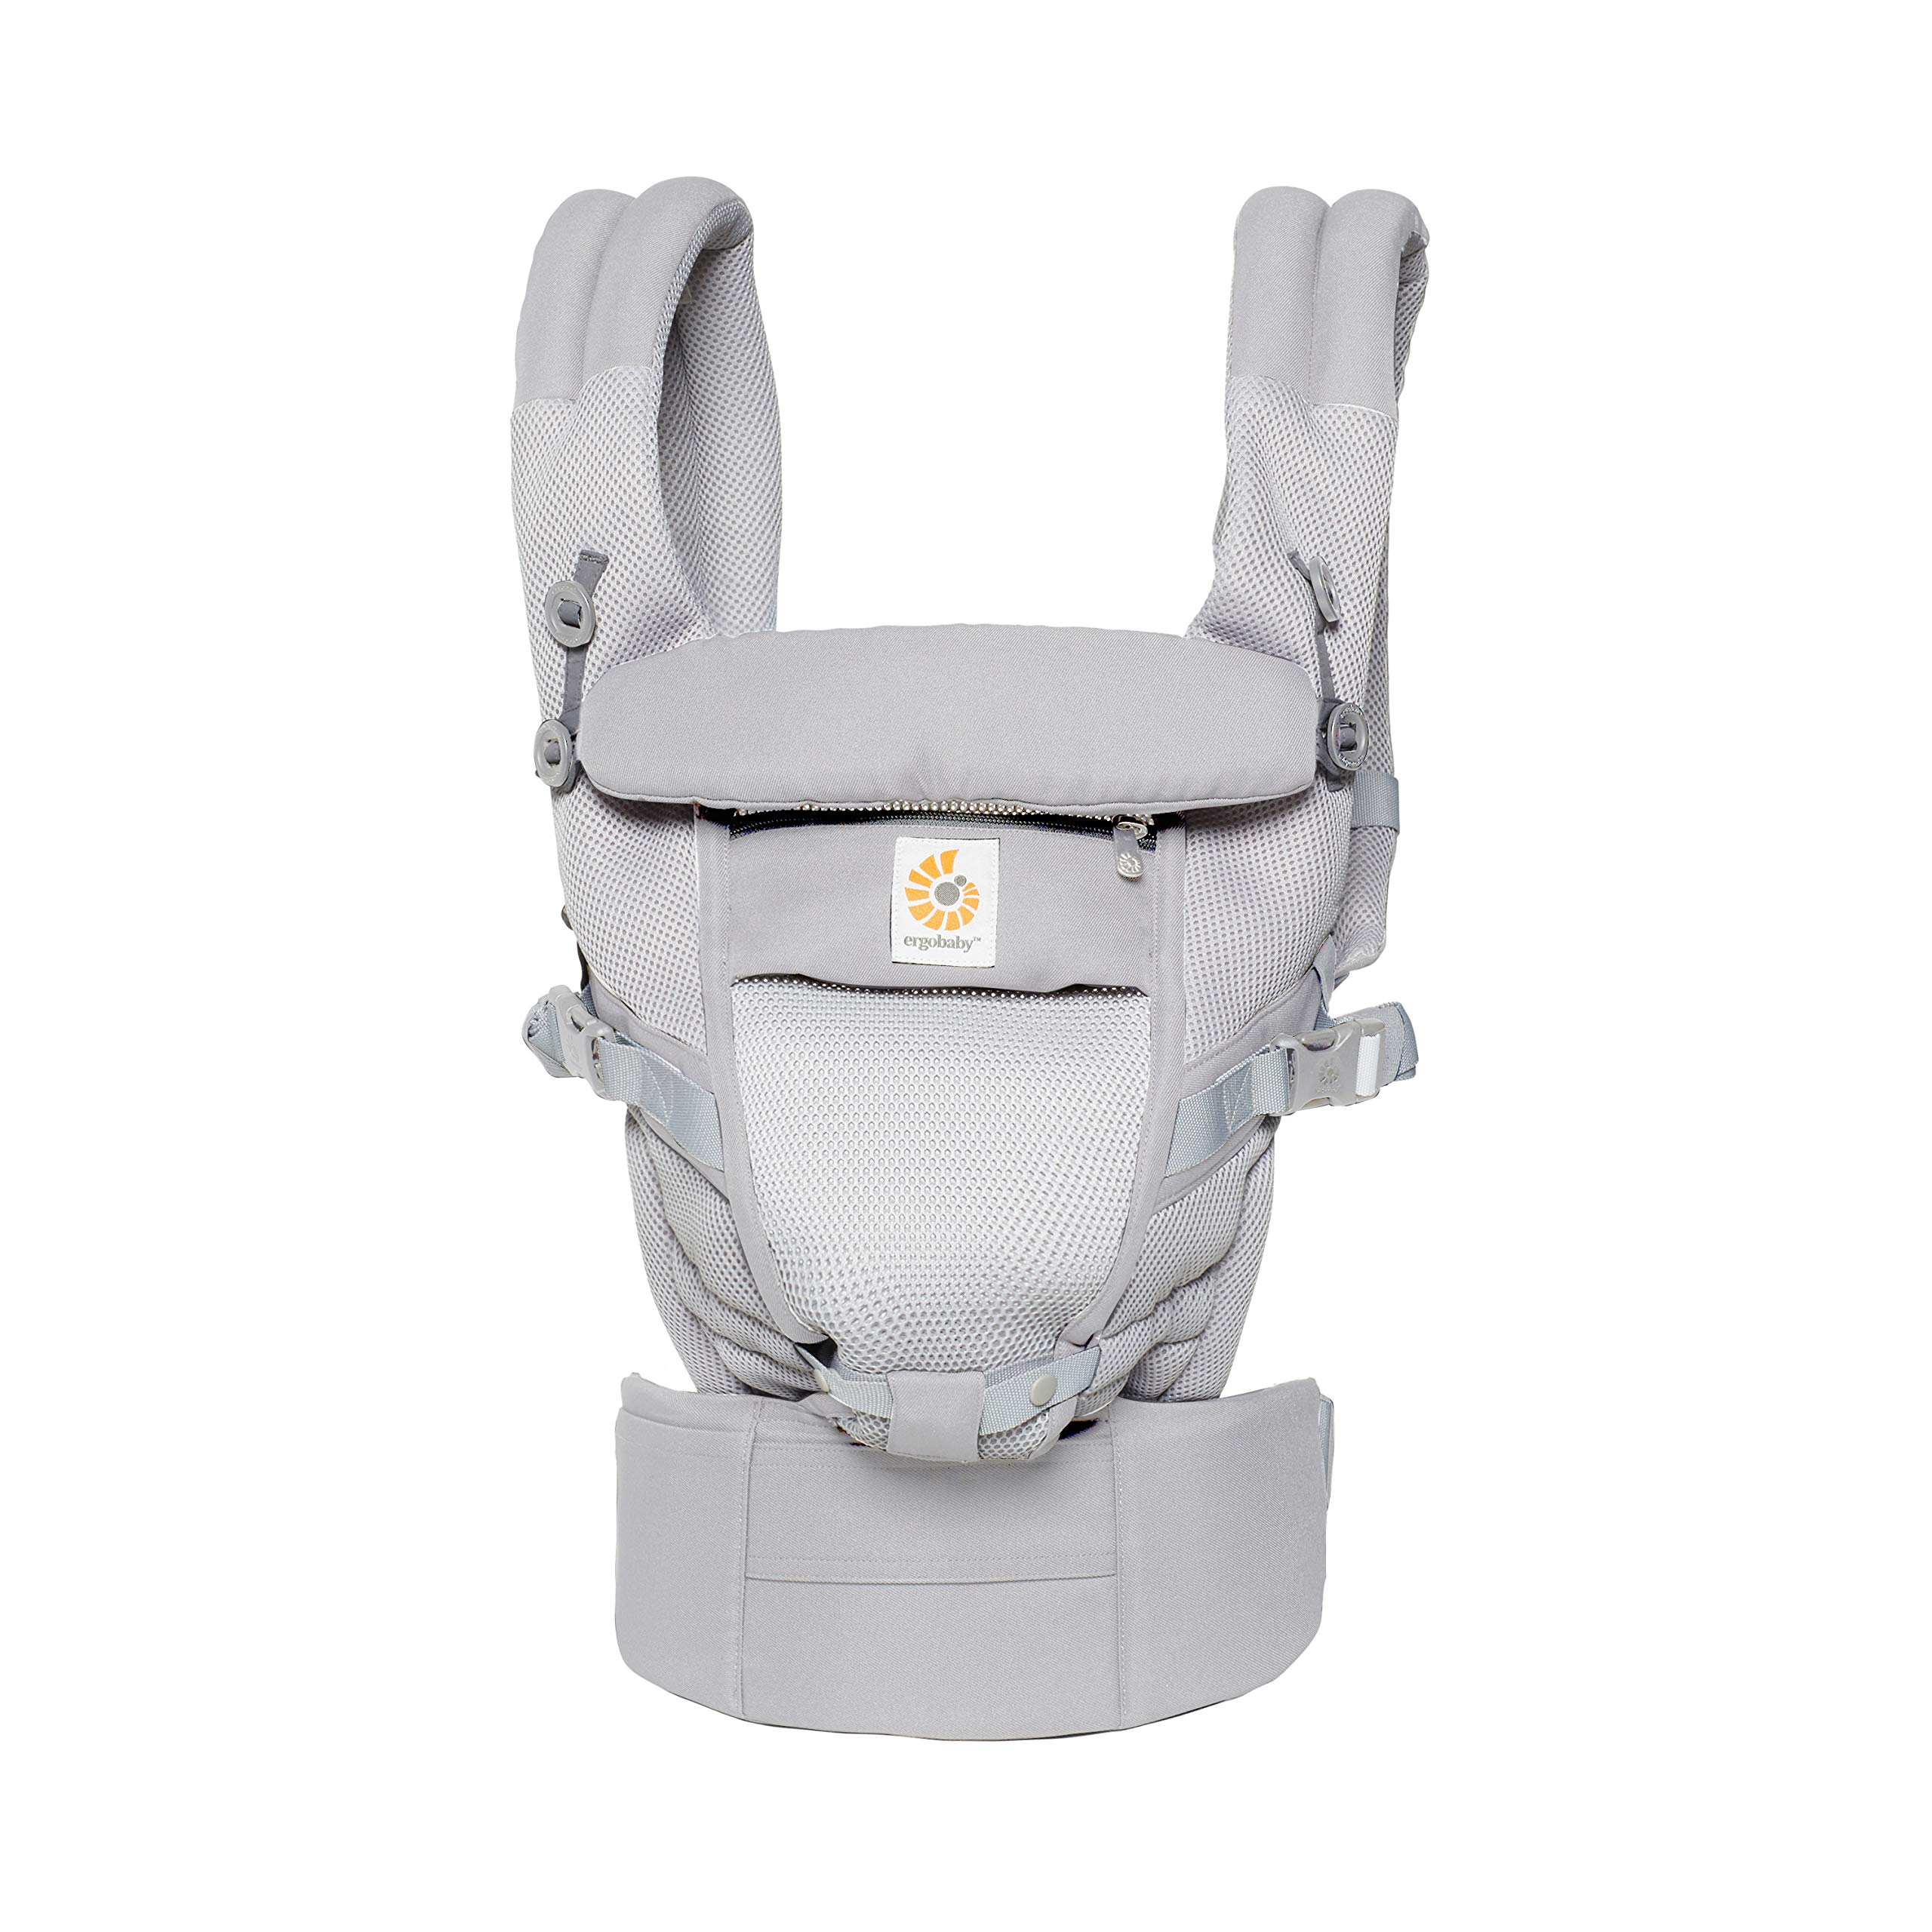 Ergobaby Adapt Baby Carrier, Infant To Toddler Carrier, Pearl Grey, Cool Air Mesh, Multi-Position, Pearl Grey